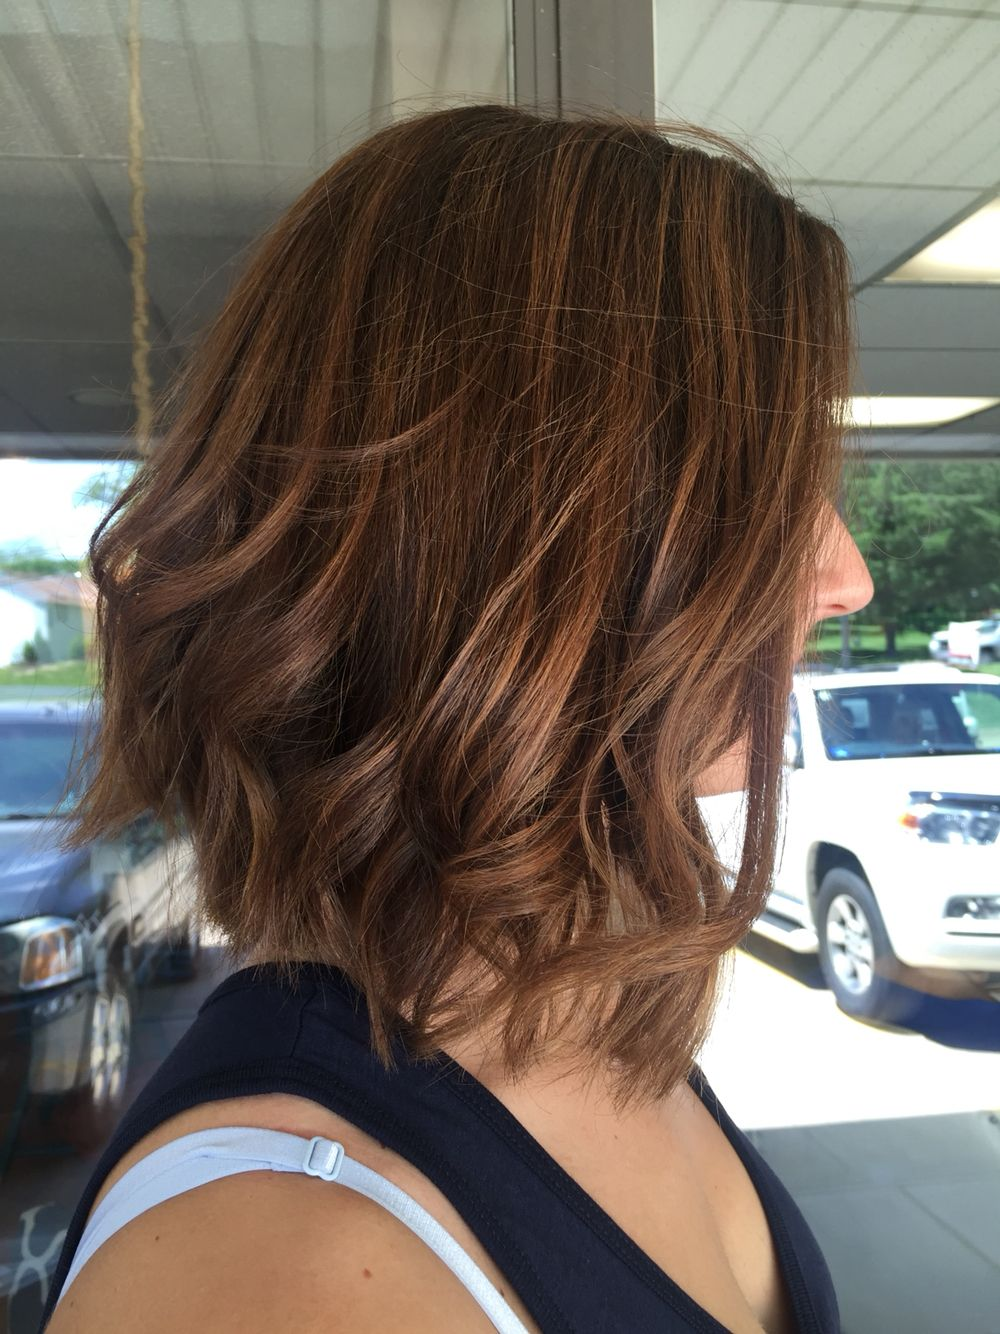 Short hair lob balayage  Short hair styles, Hair, Balayage